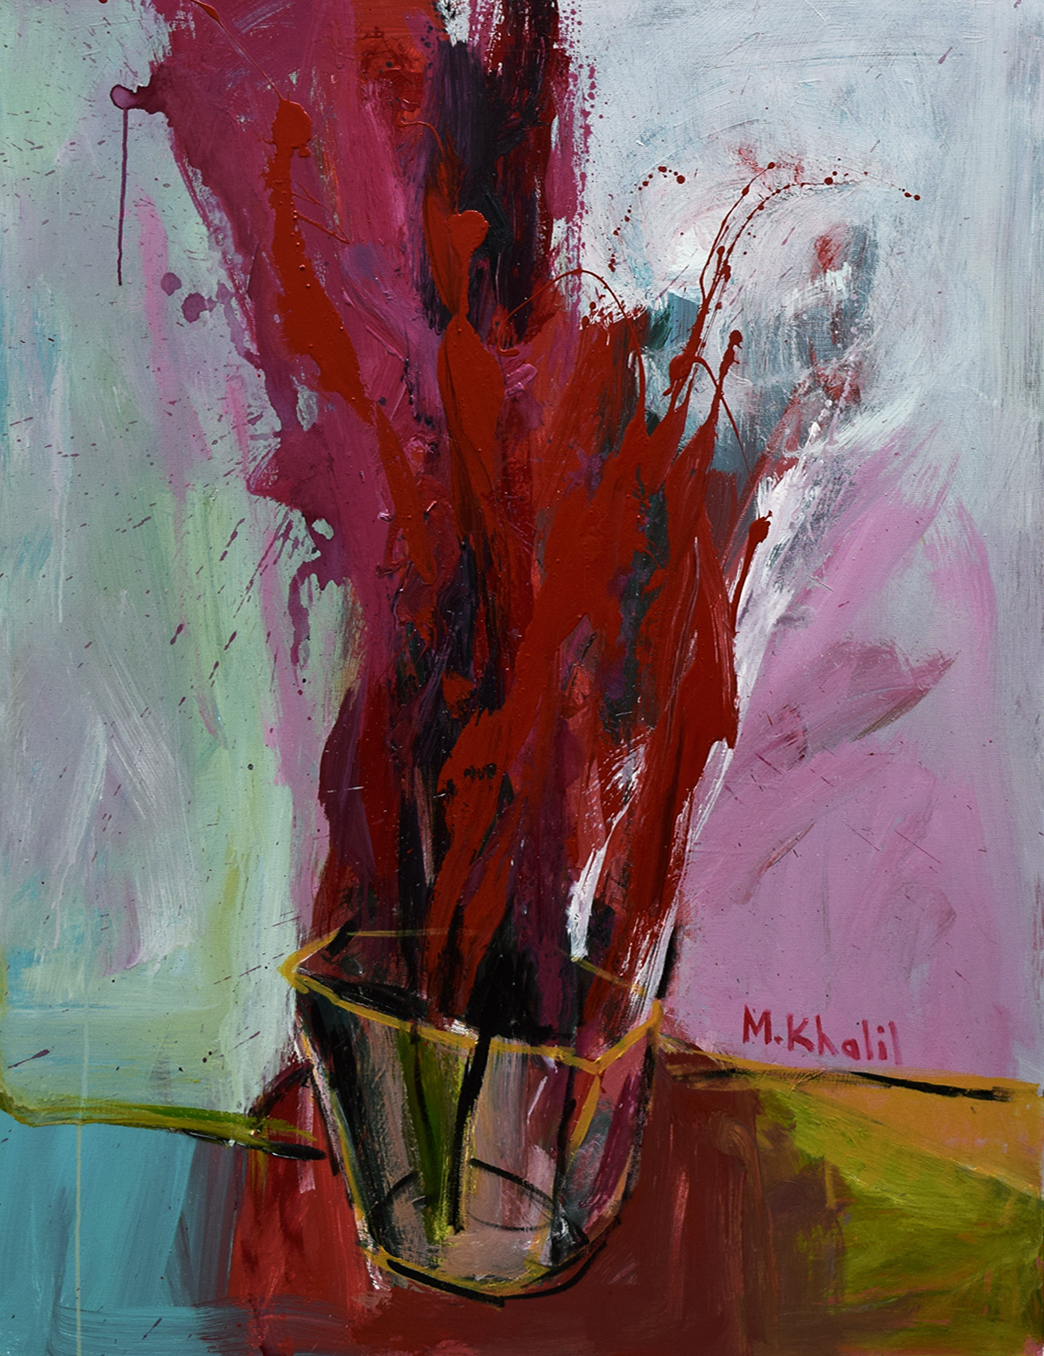 XOL Gallery - Mohamed Khalil (Palestine) - _Vase I_ - 36 x 48 in - Acrylic on canvas - Baltimore, MD 2016 - $3,000.00.jpg